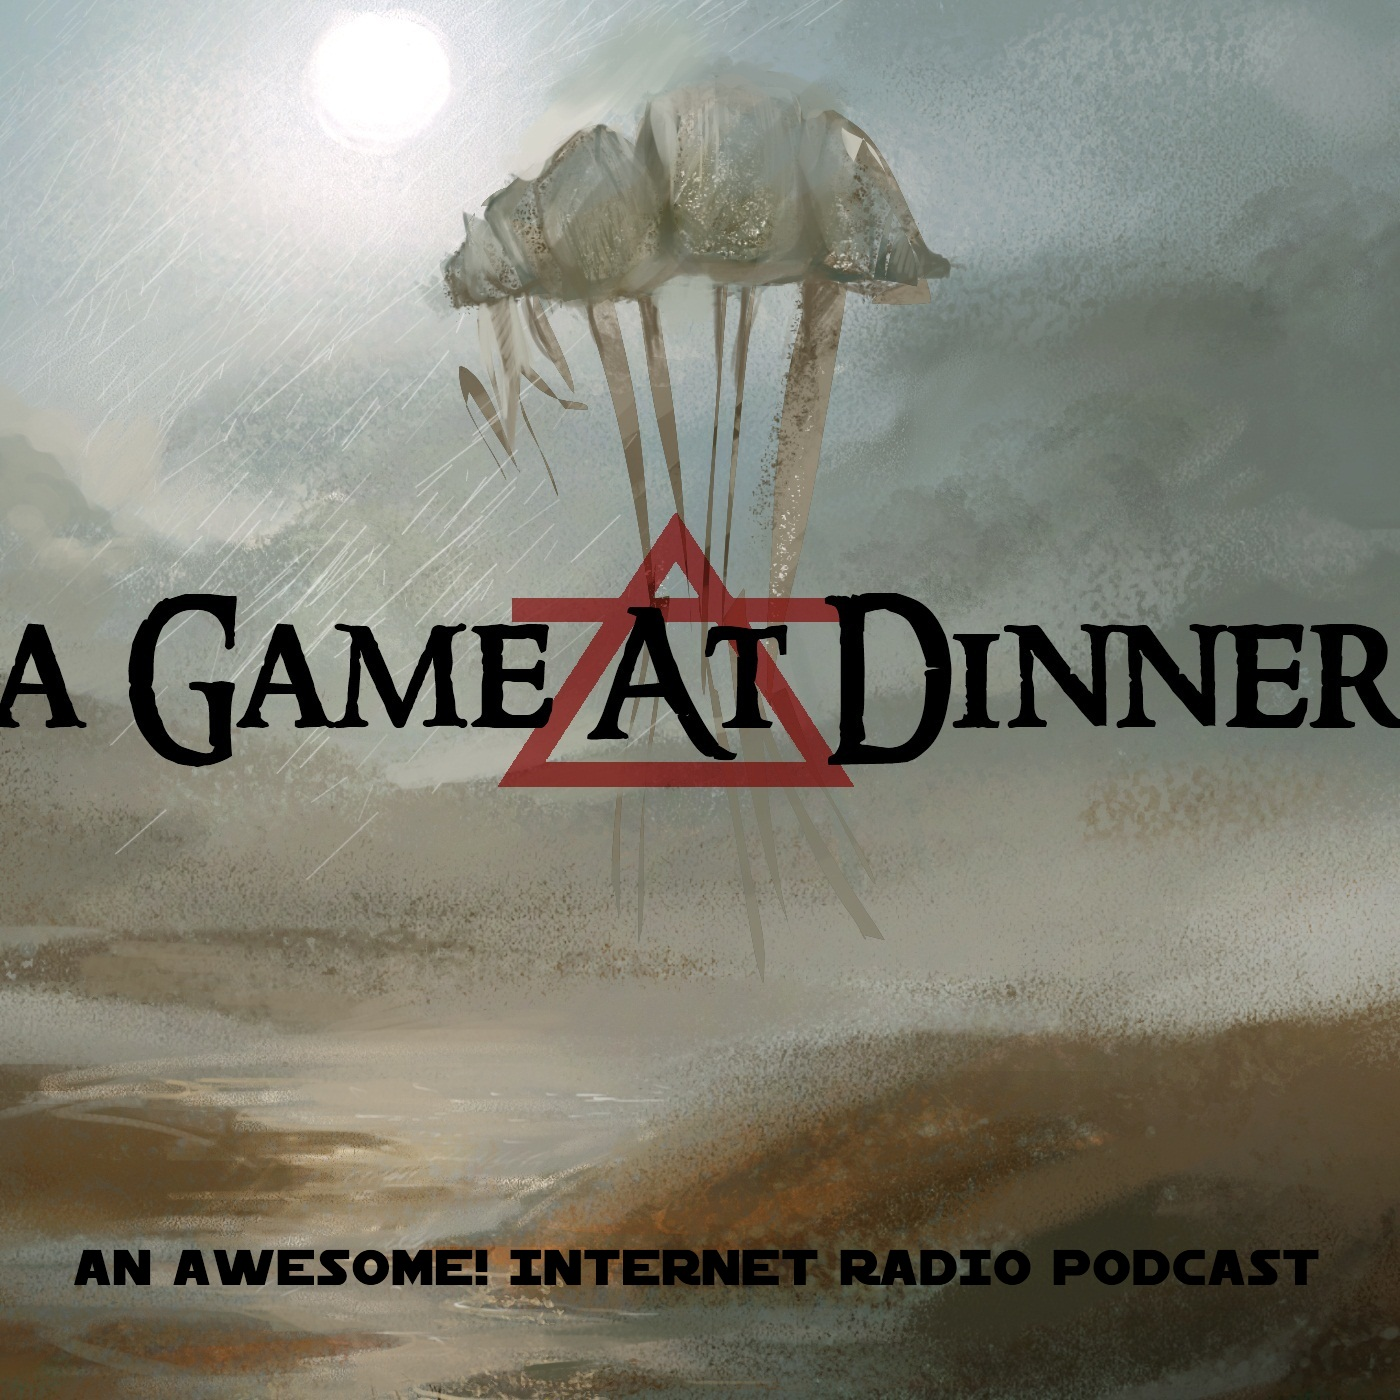 Awesome! Internet Radio » A Game at Dinner